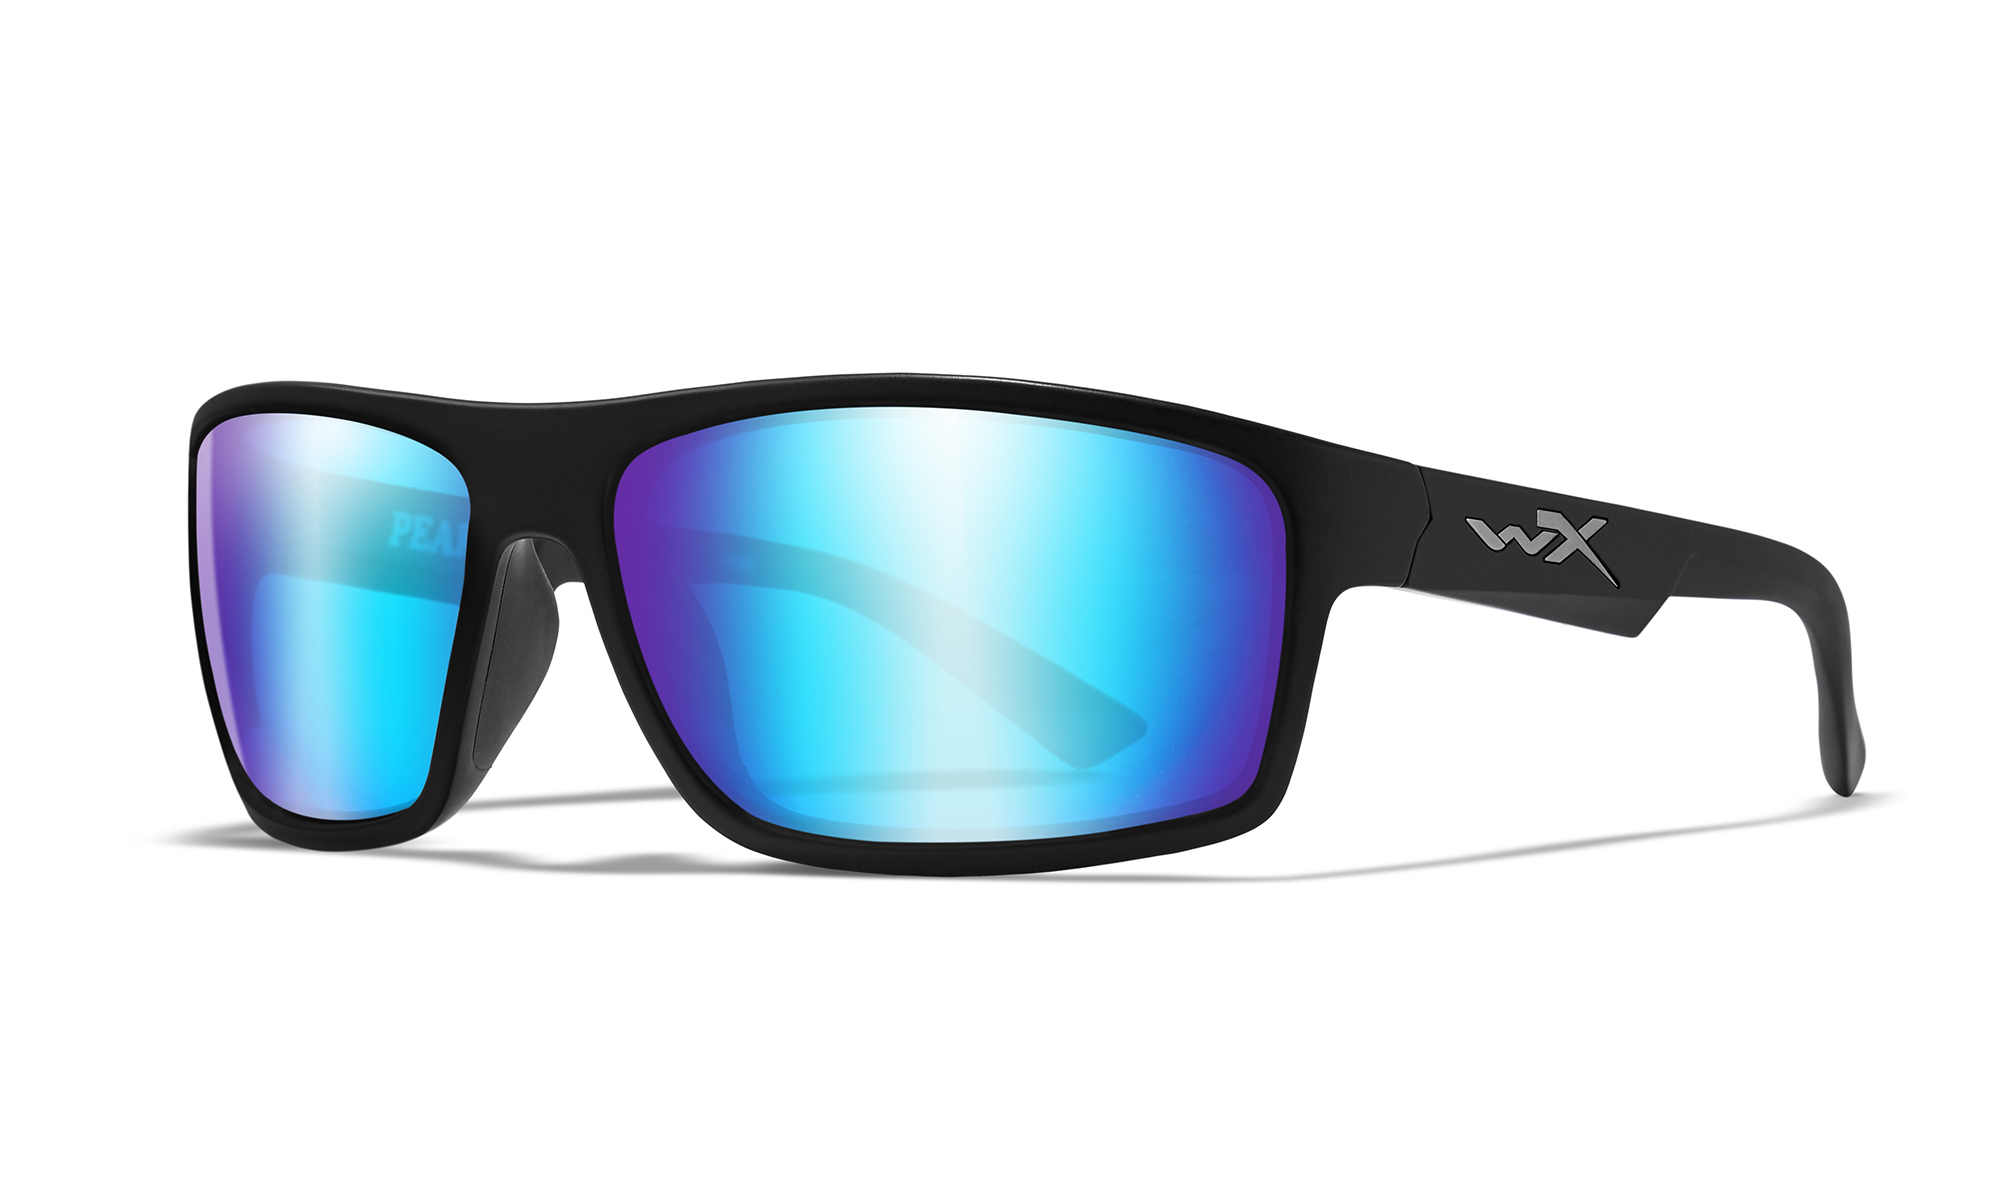 88768ee5a3 Wiley X Sunglasses and Safety Glasses - USA Online Store